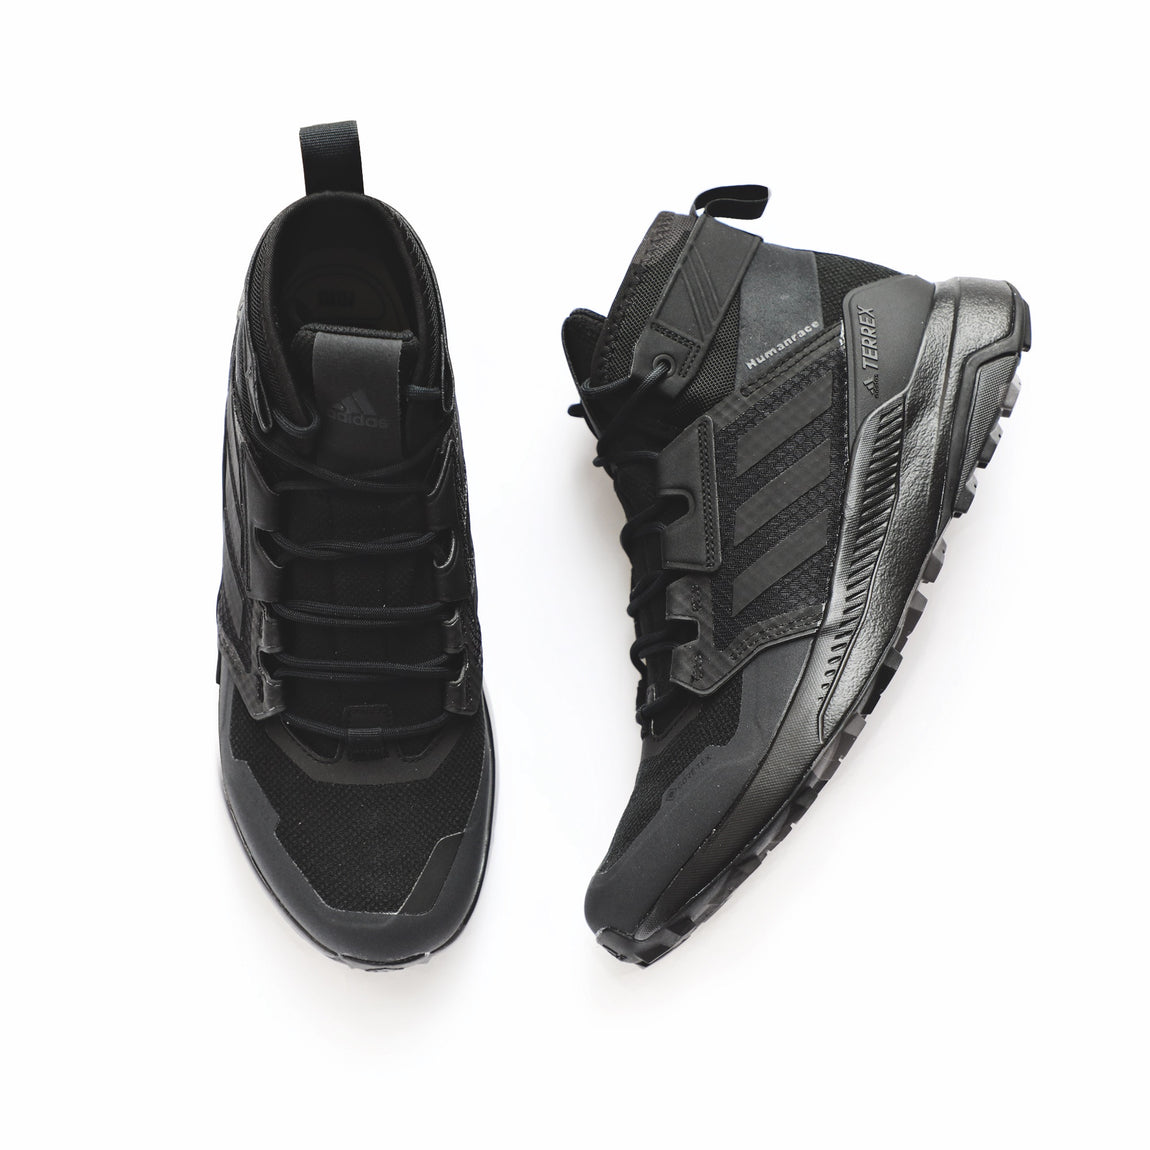 Adidas X Pharrell Williams Terrex Trail Maker Mid GORE-TEX (Black) - Adidas X Pharrell Williams Terrex Trail Maker Mid GORE-TEX (Black) -